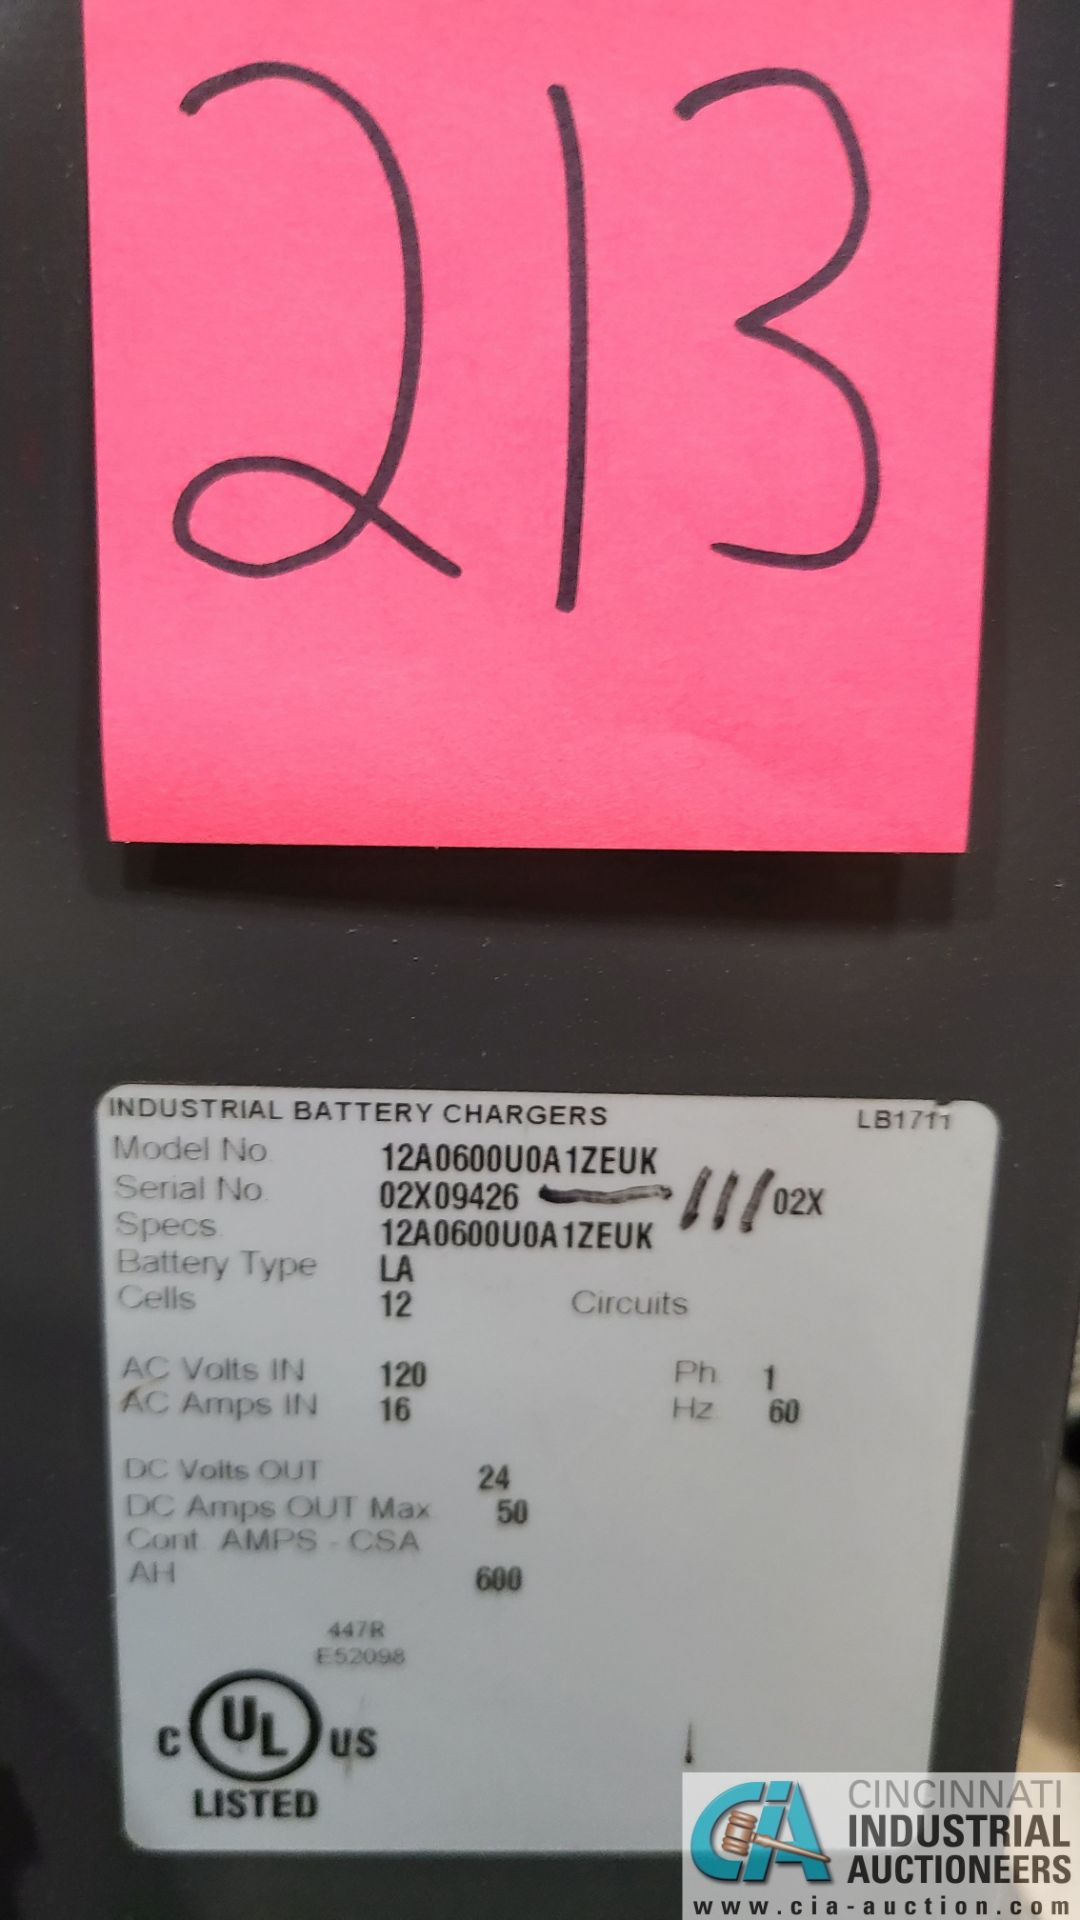 24-VOLT BATTERY BUILDERS MODEL 12A6060000A1ZEUK BATTERY CHARGER; S/N 02X9426-111 (2570 ORCHARD - Image 4 of 4